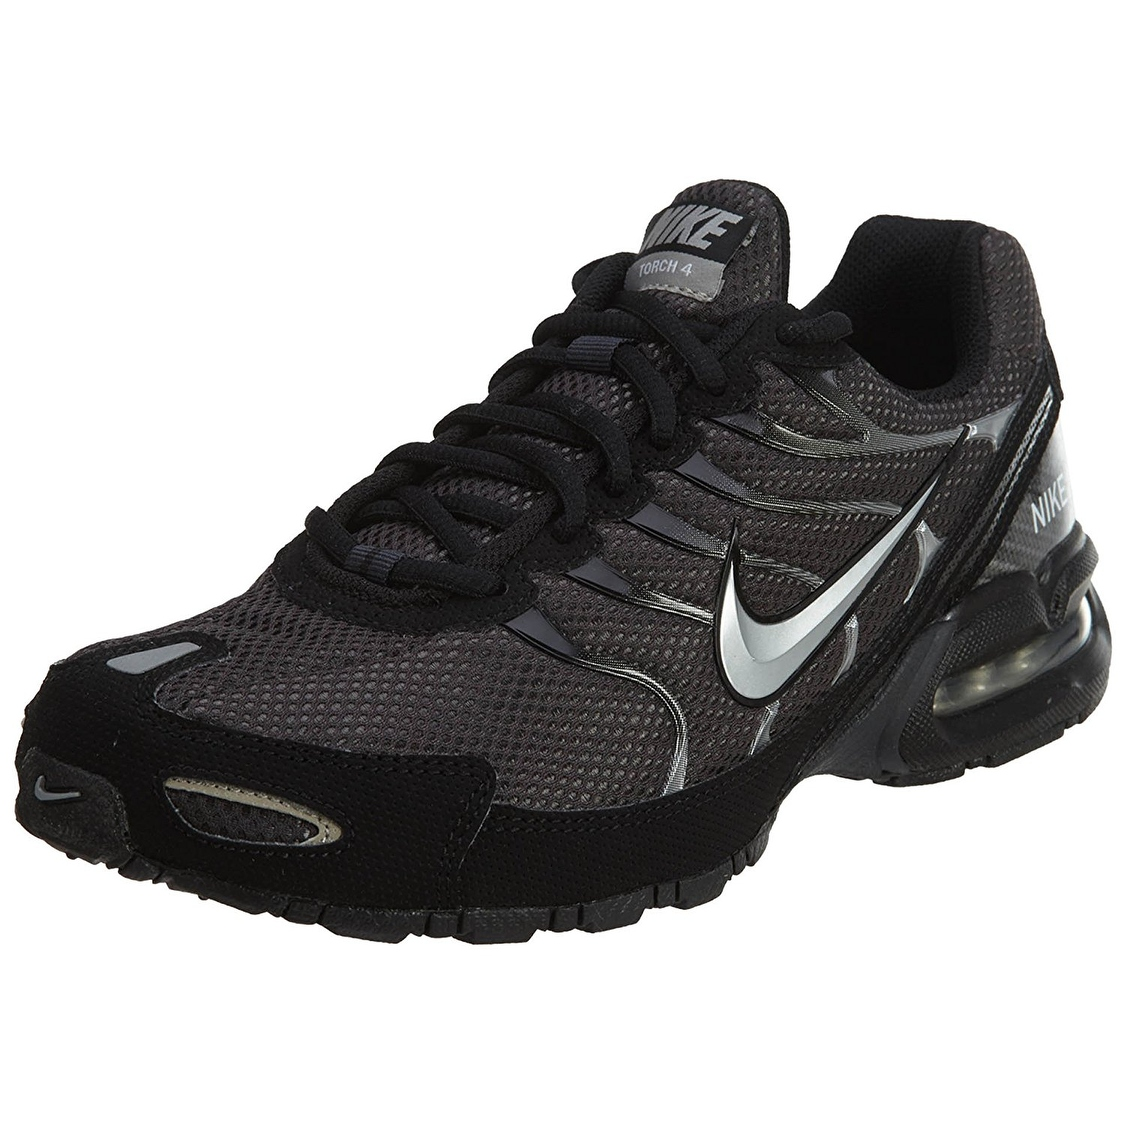 nike air max torch 4 men's running shoes review